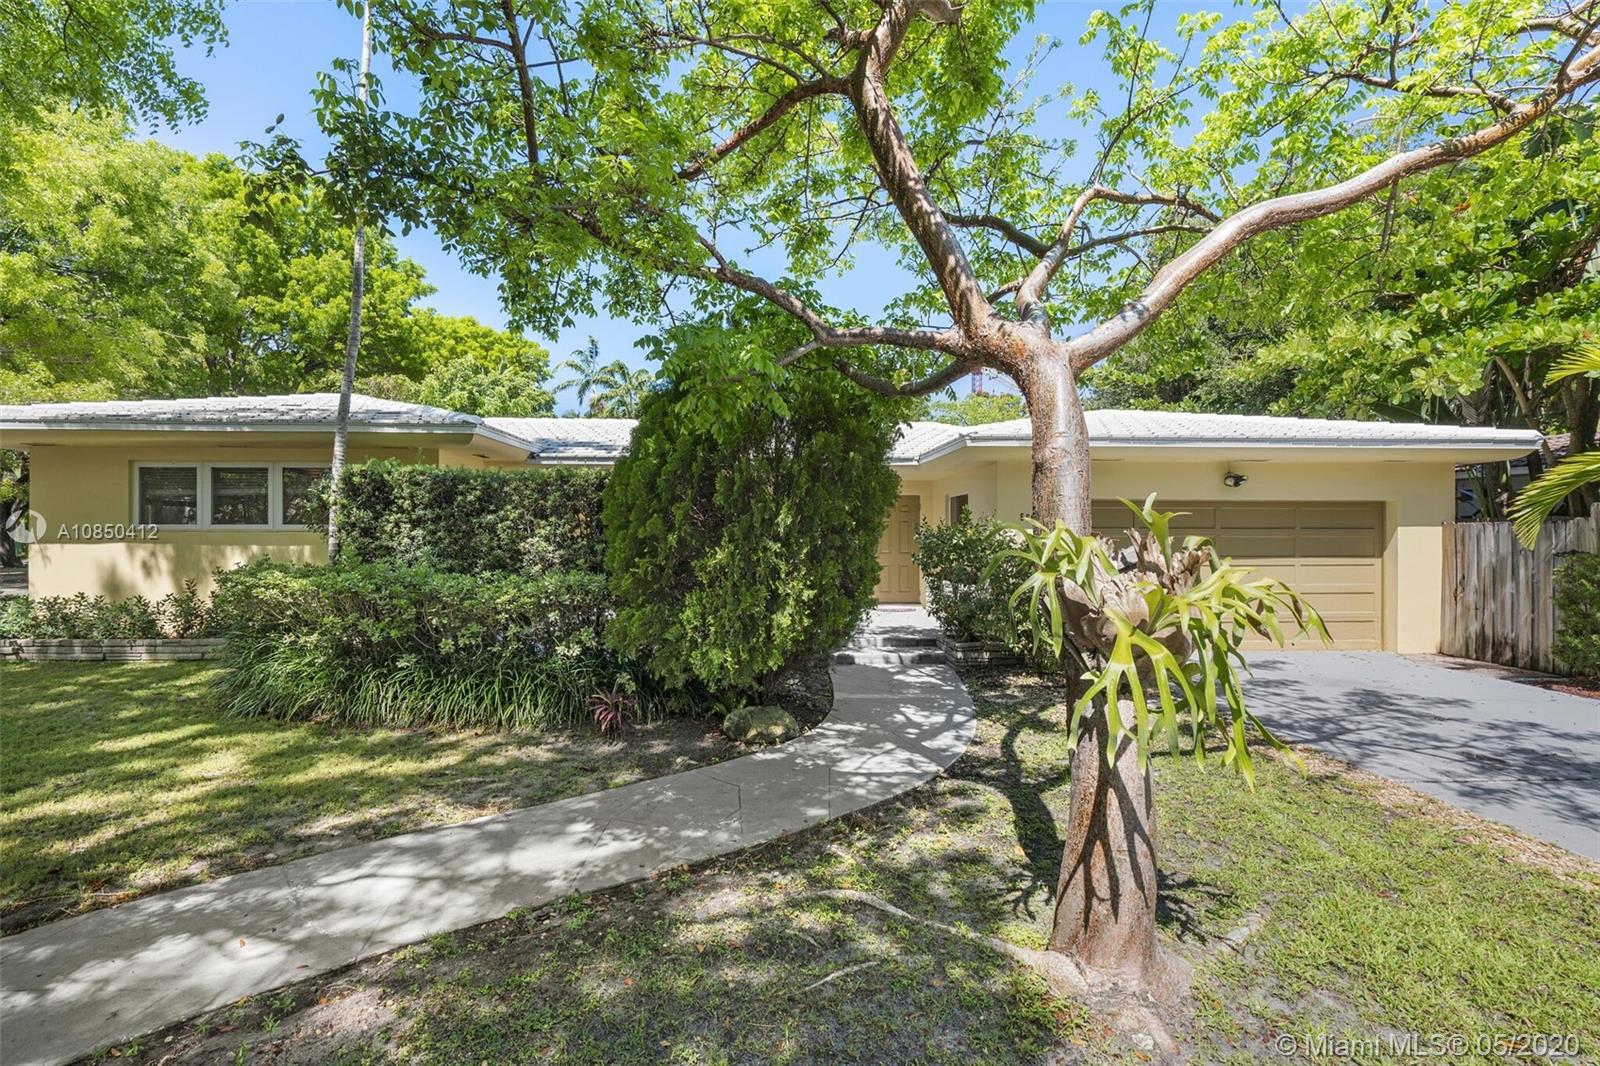 5600 NE 5th Ave, Miami, Florida 33137, 3 Bedrooms Bedrooms, ,3 BathroomsBathrooms,Residential,For Sale,5600 NE 5th Ave,A10850412